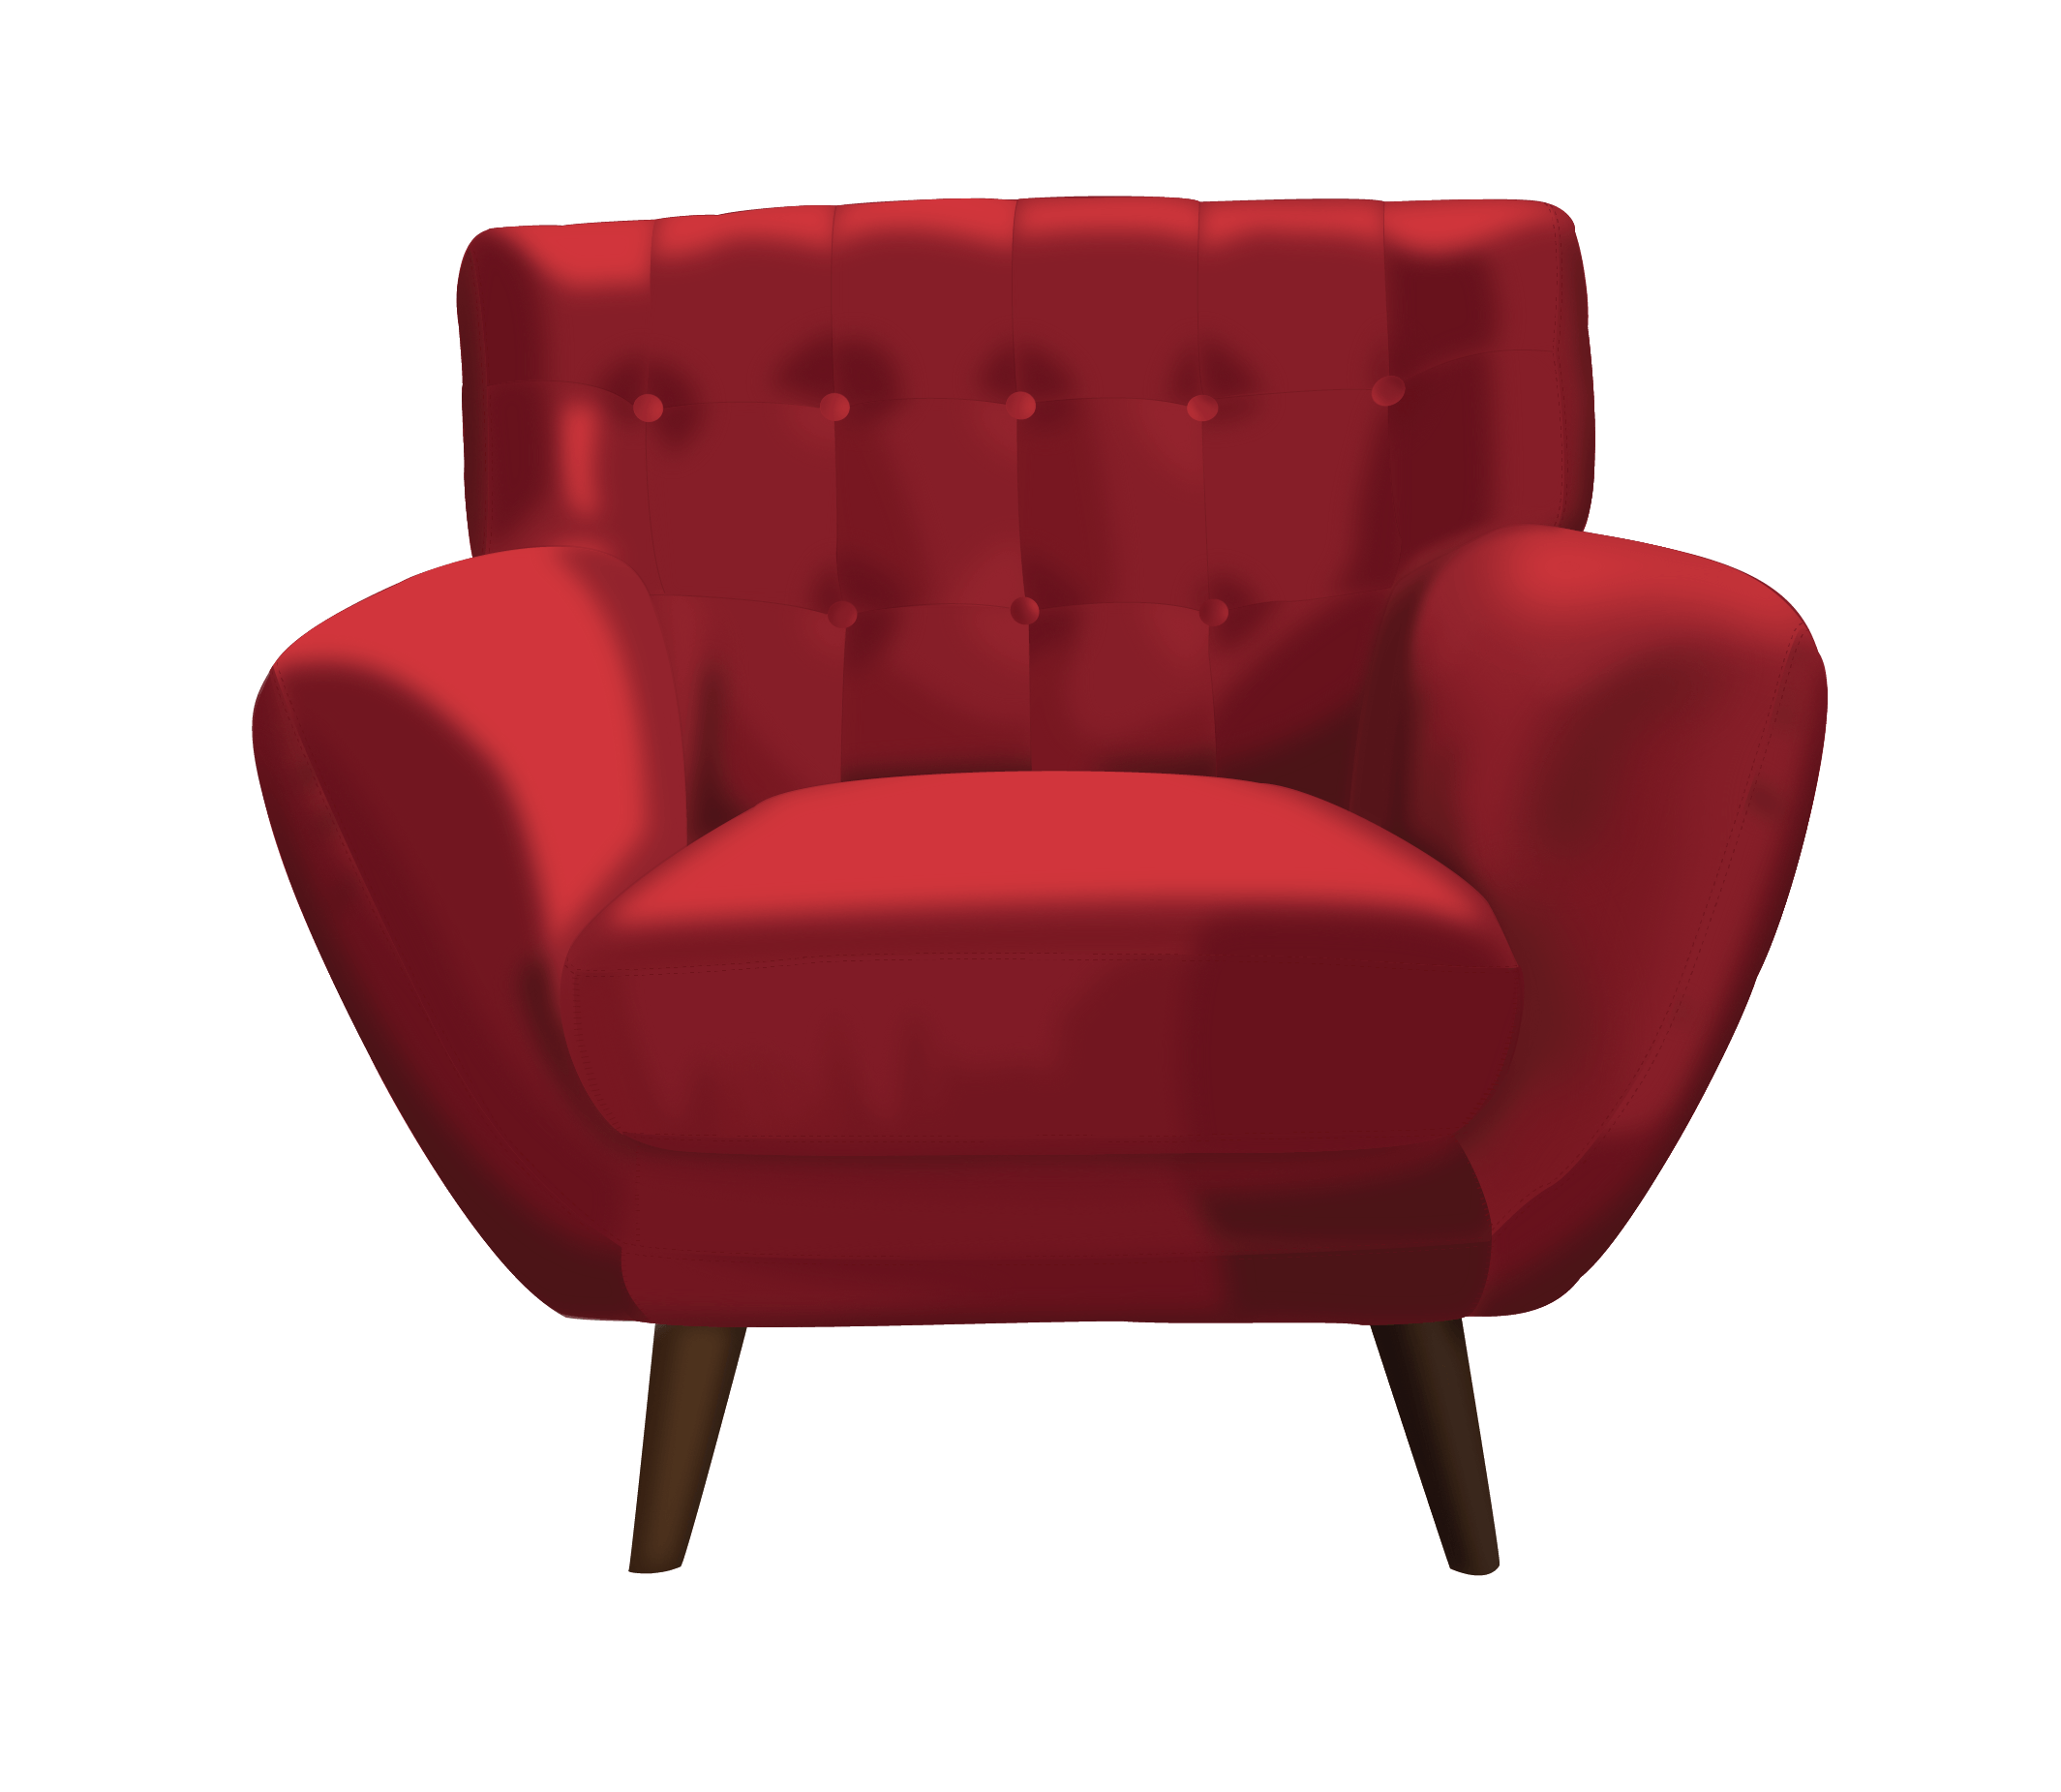 vectorization of a sofa chair